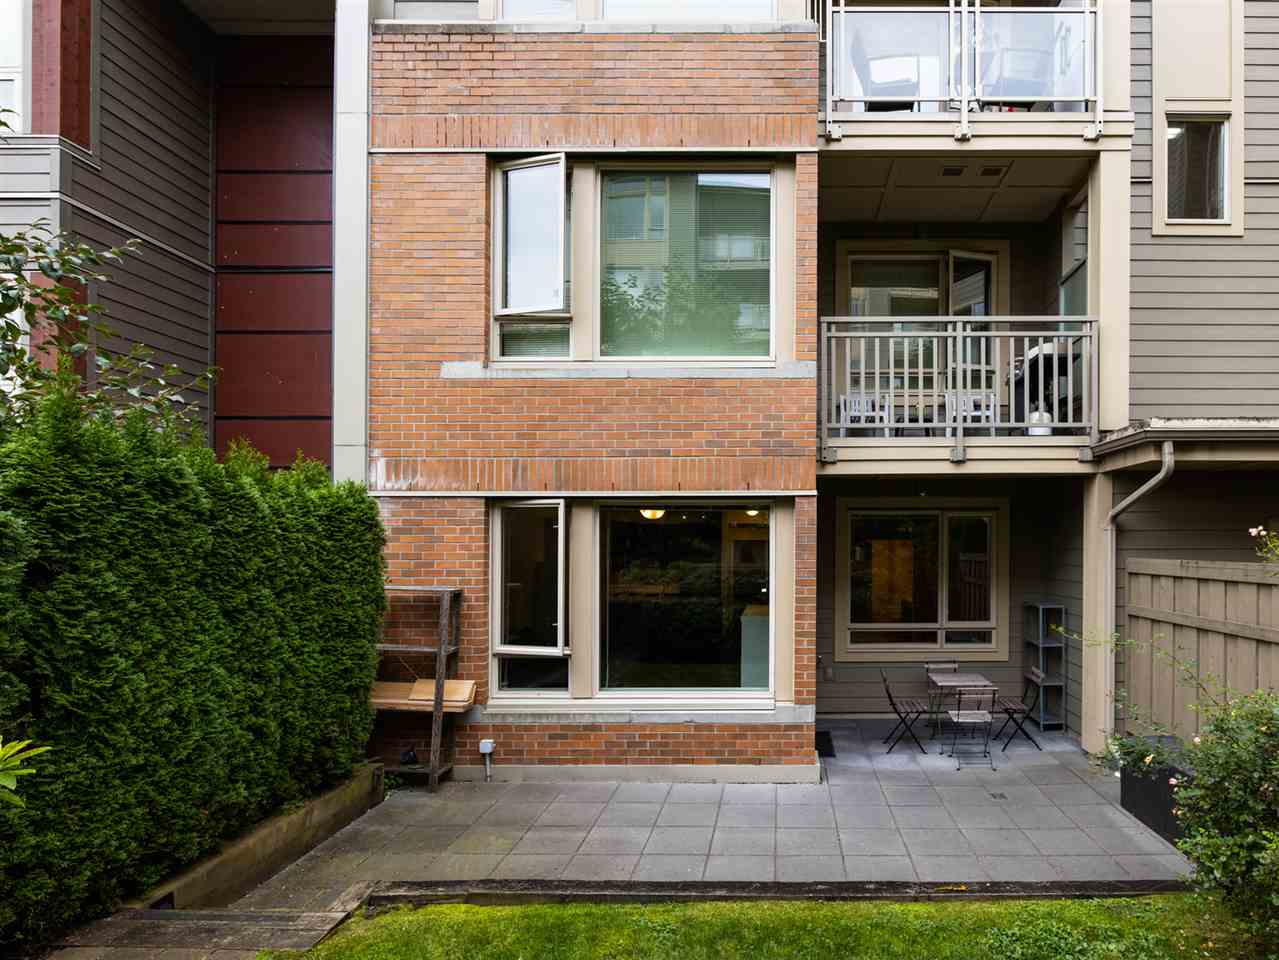 102 159 W 22ND STREET - Central Lonsdale Apartment/Condo for sale, 1 Bedroom (R2502448) - #31